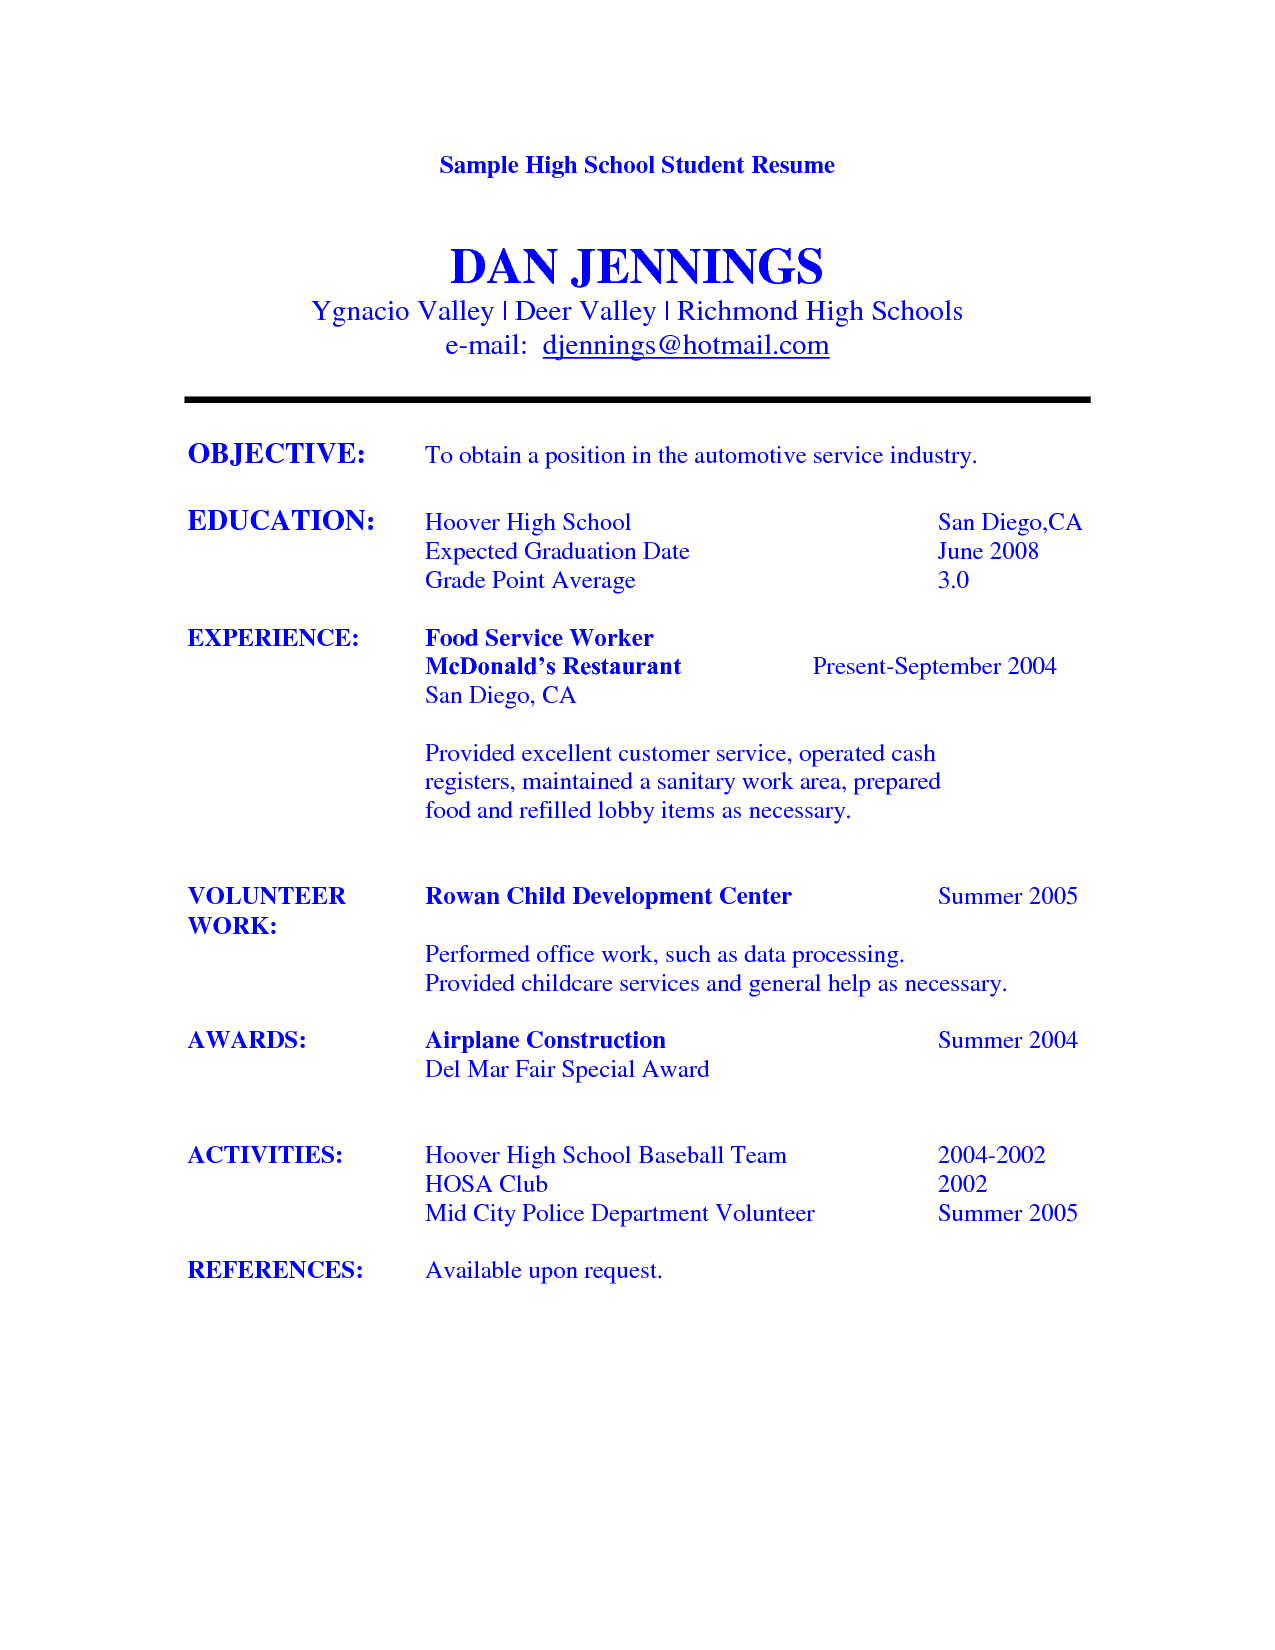 School Resume Template Resume Example For High School Student Sample Resumes  Httpwww